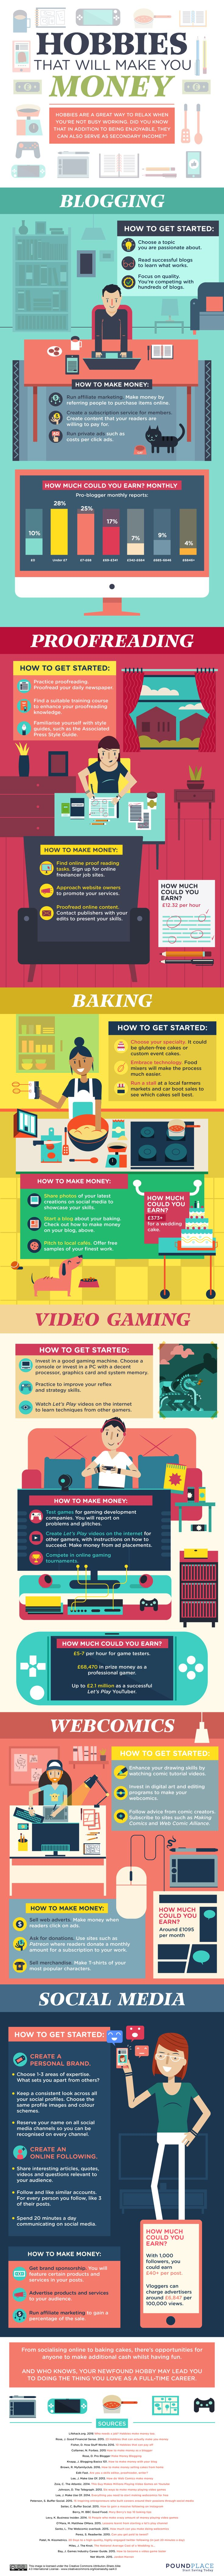 6 Hobbies That Can Actually Make You Money [INFOGRAPHIC]